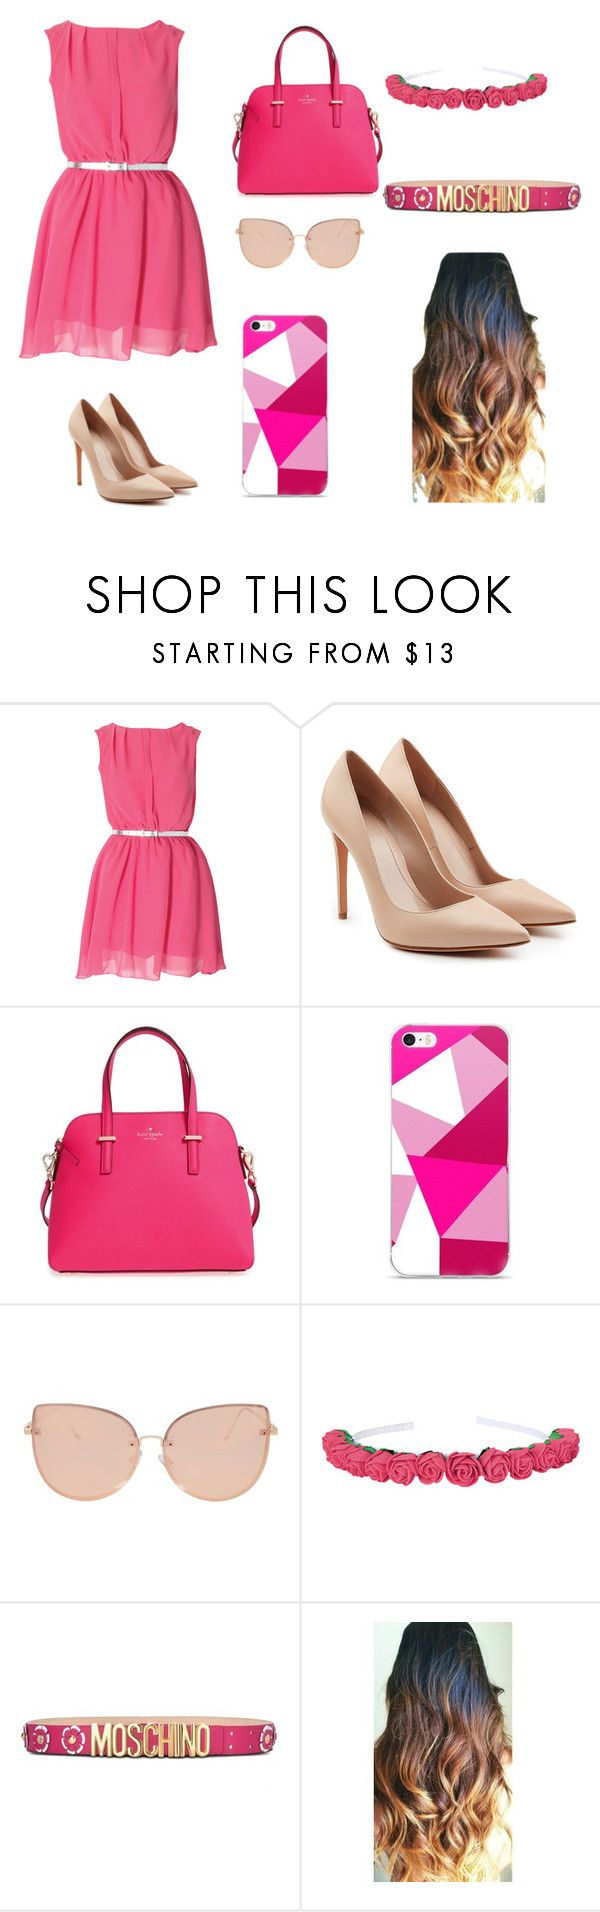 """Fashion..."" by daniuskaloreto on Polyvore featuring moda, Alexander McQueen, Kate Spade, Topshop y Moschino"